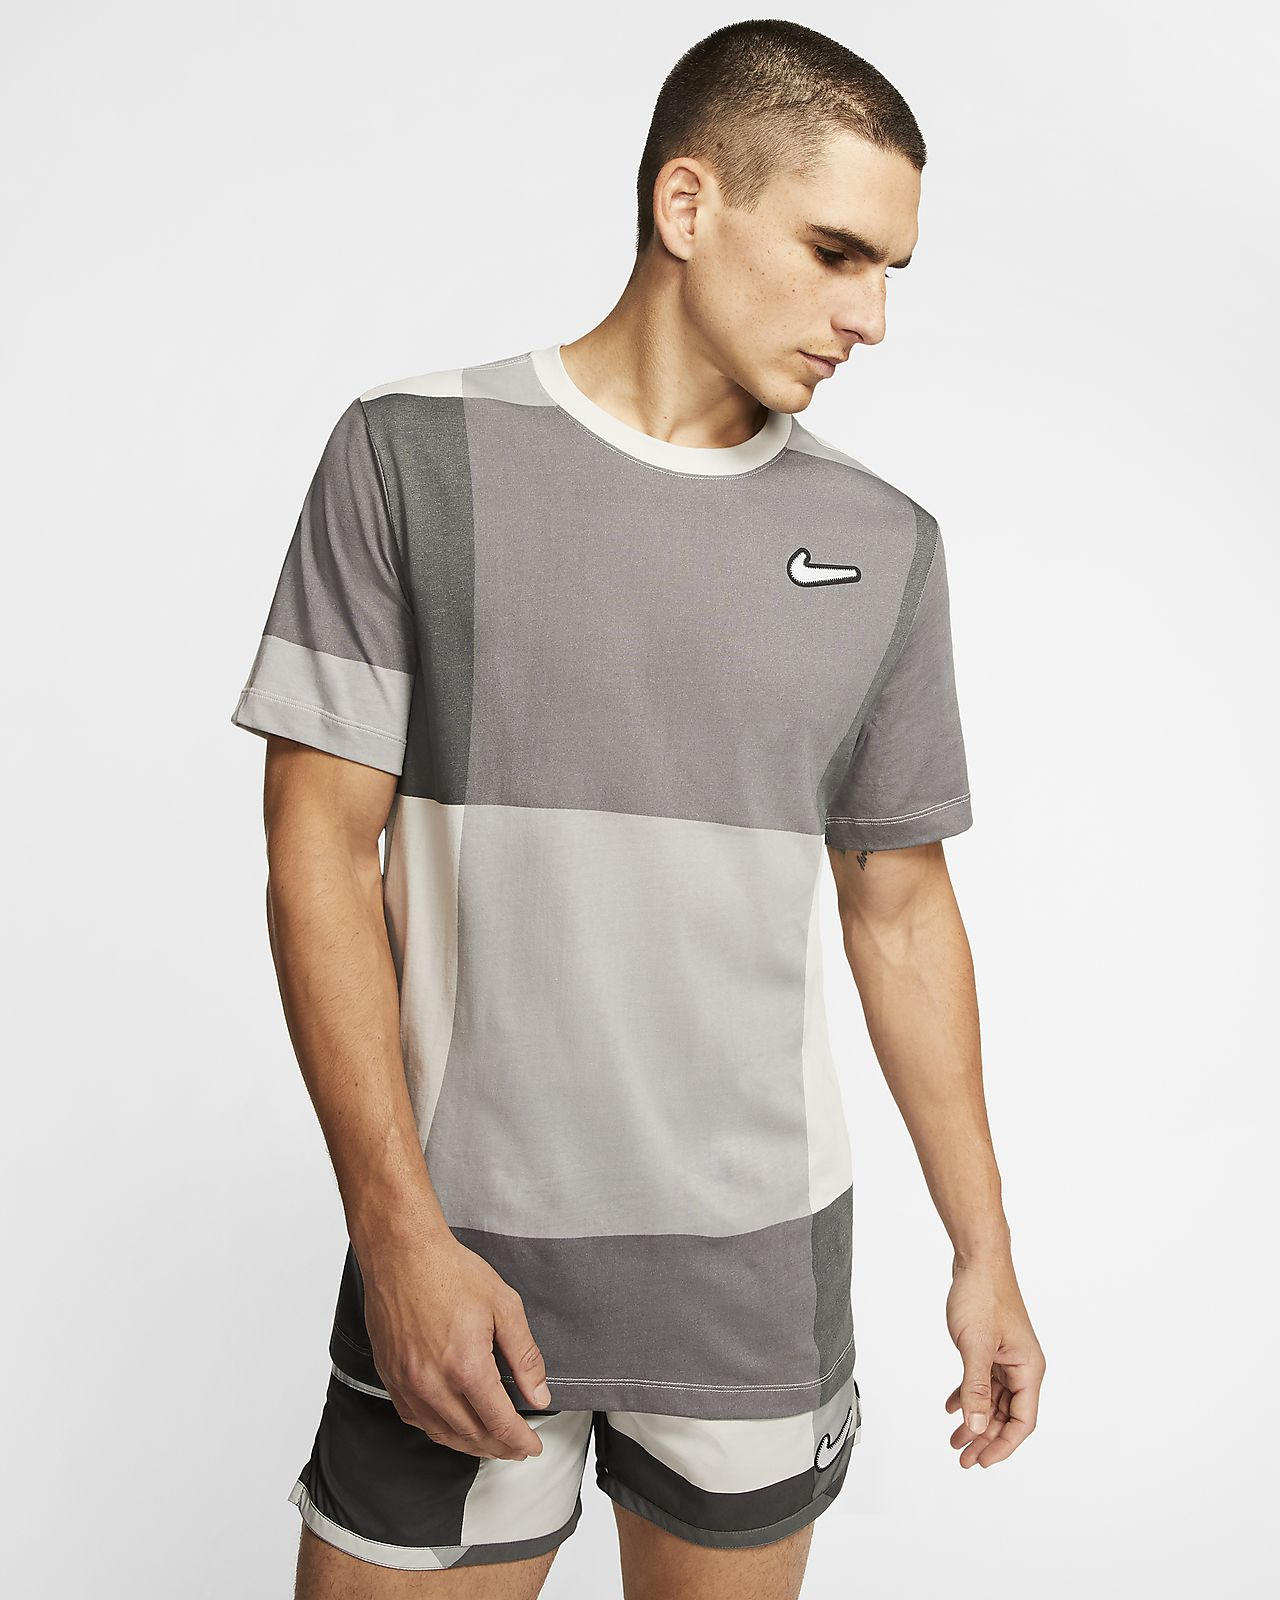 Men/'s Nike Standard Fit Dri-Fit Running Shirt